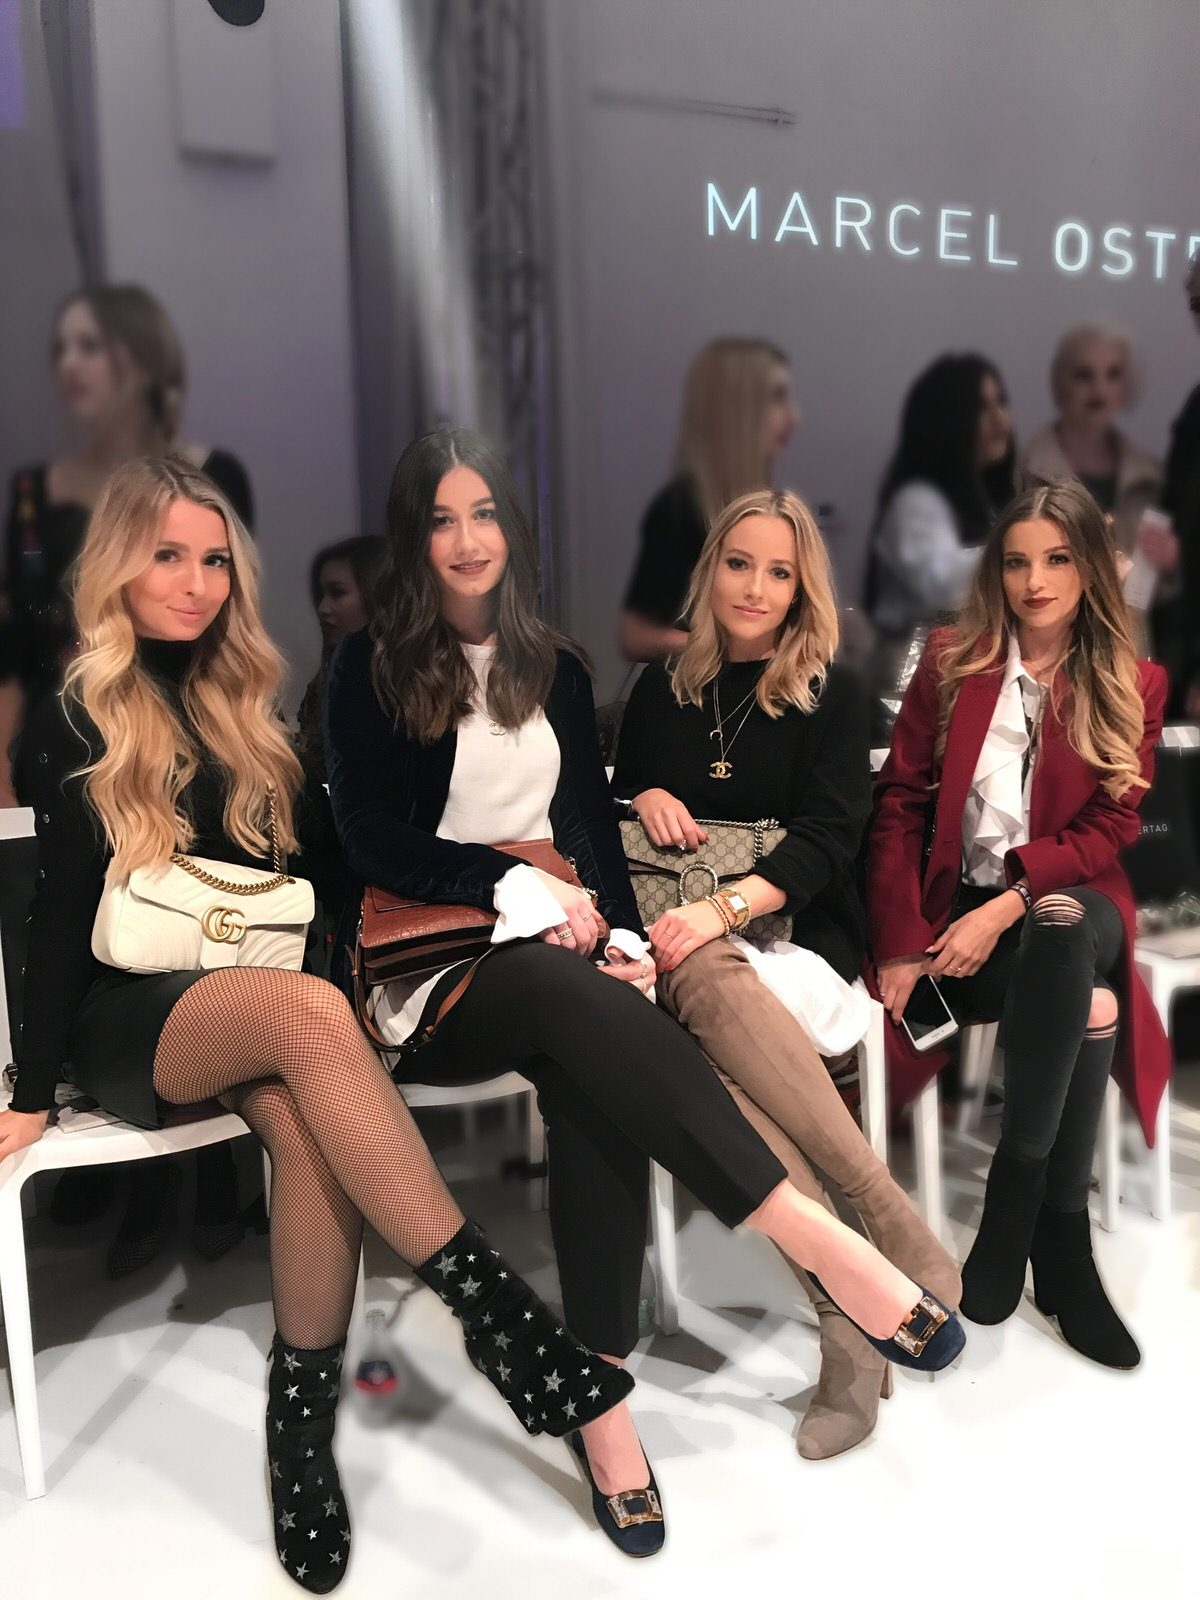 SEAT, ThisIsMii, Cosmopolitan, rS, reward style, Marcel Ostertag, Berlin, Mii, Fashion Week, Show,